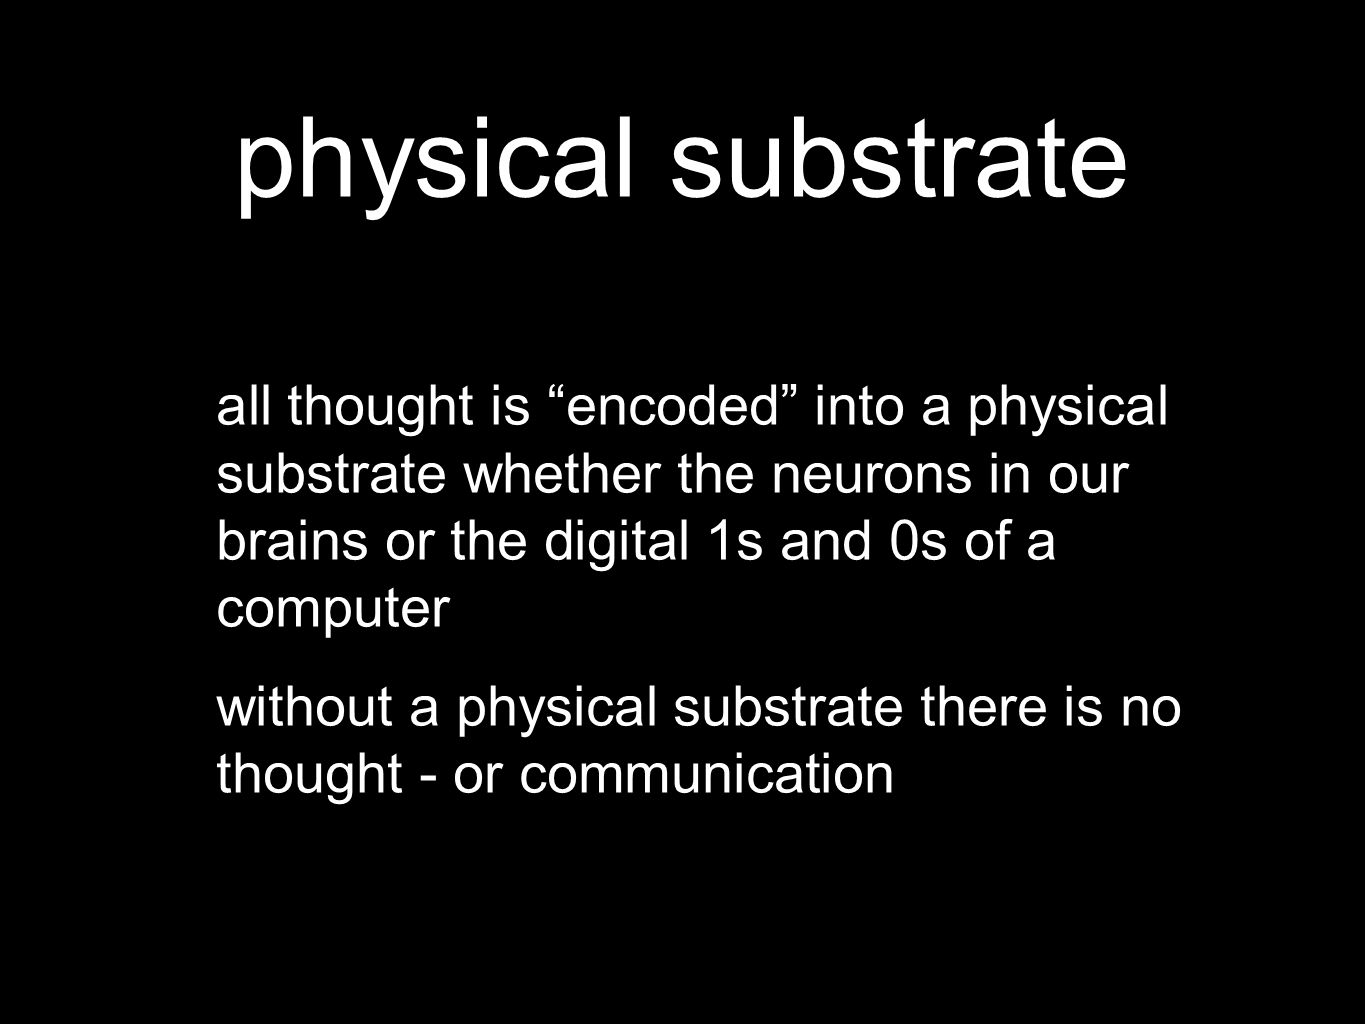 physical substrate all thought is encoded into a physical substrate whether the neurons in our brains or the digital 1s and 0s of a computer without a physical substrate there is no thought - or communication